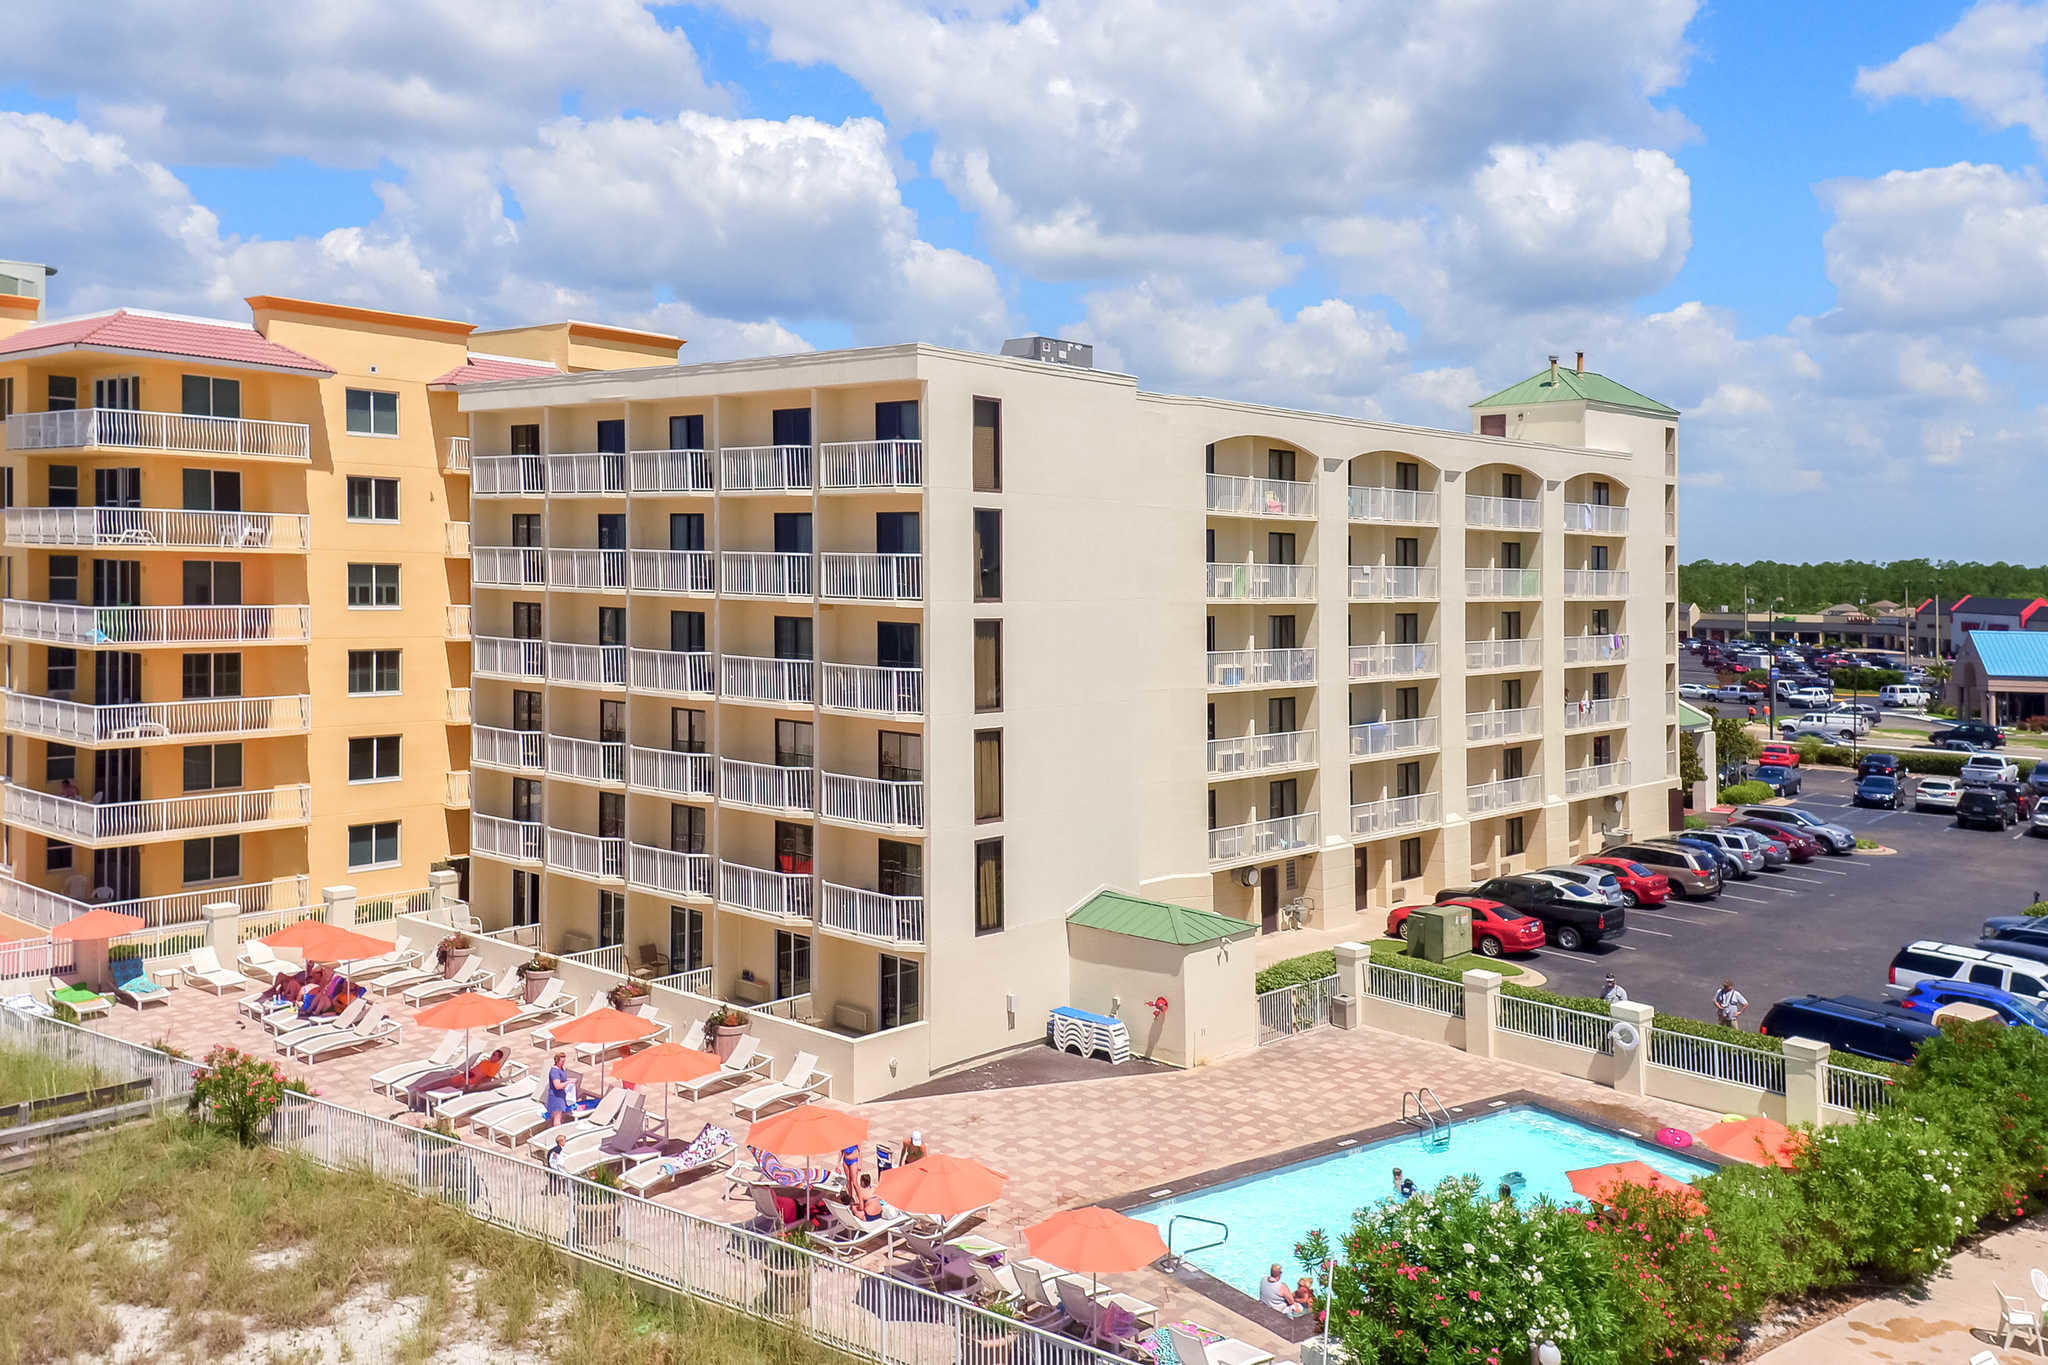 Sleep inn on the beach orange beach alabama for Hotels orange